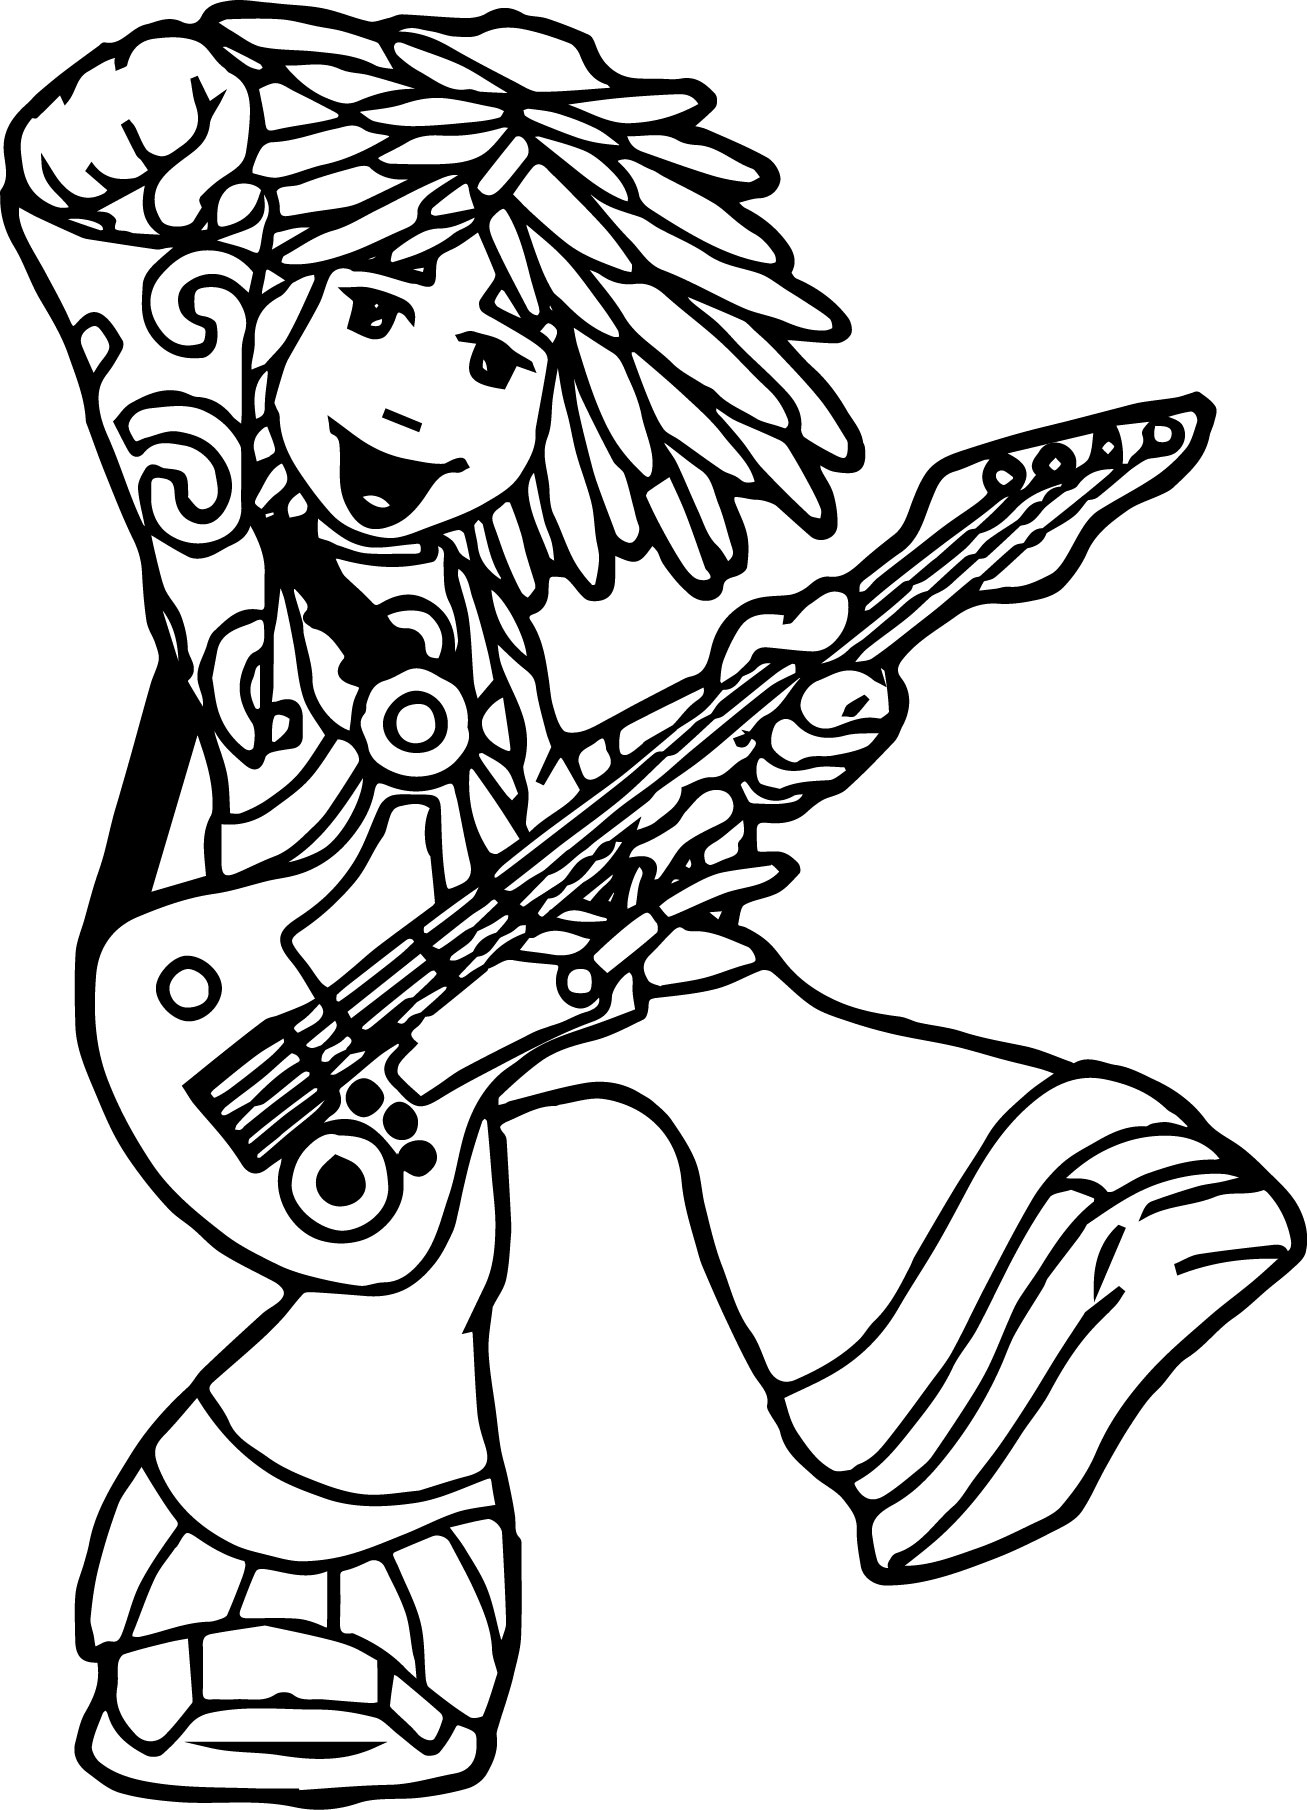 The Doodlebops Coloring Pages Wecoloringpage Doodlebops Coloring Pages